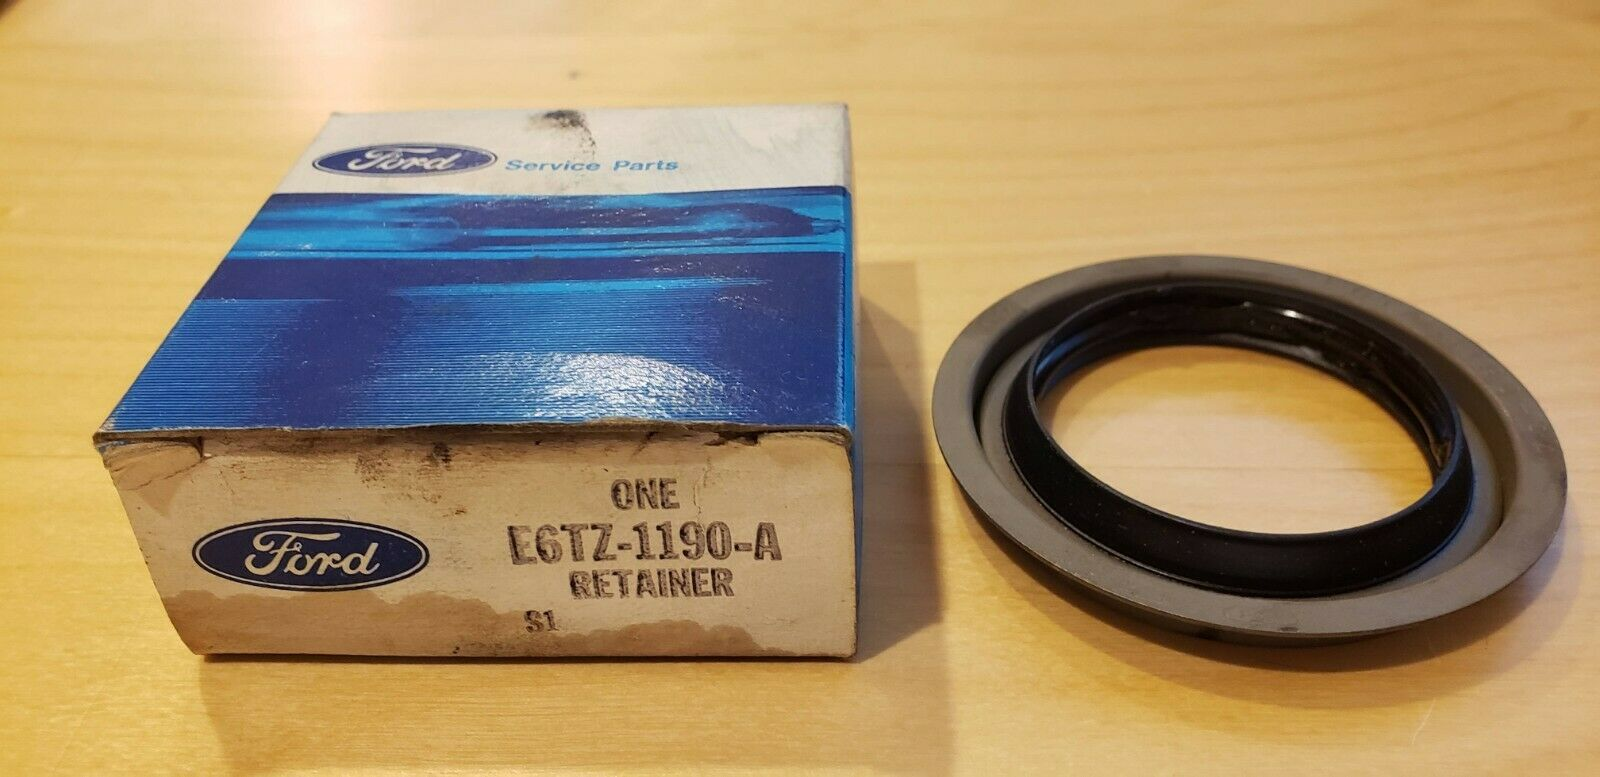 2 OEM Ford Retainer Wheel Hub Axle Seal EGTZ-1190-A EGTZ1190A You Get 2 Does not apply 1008207